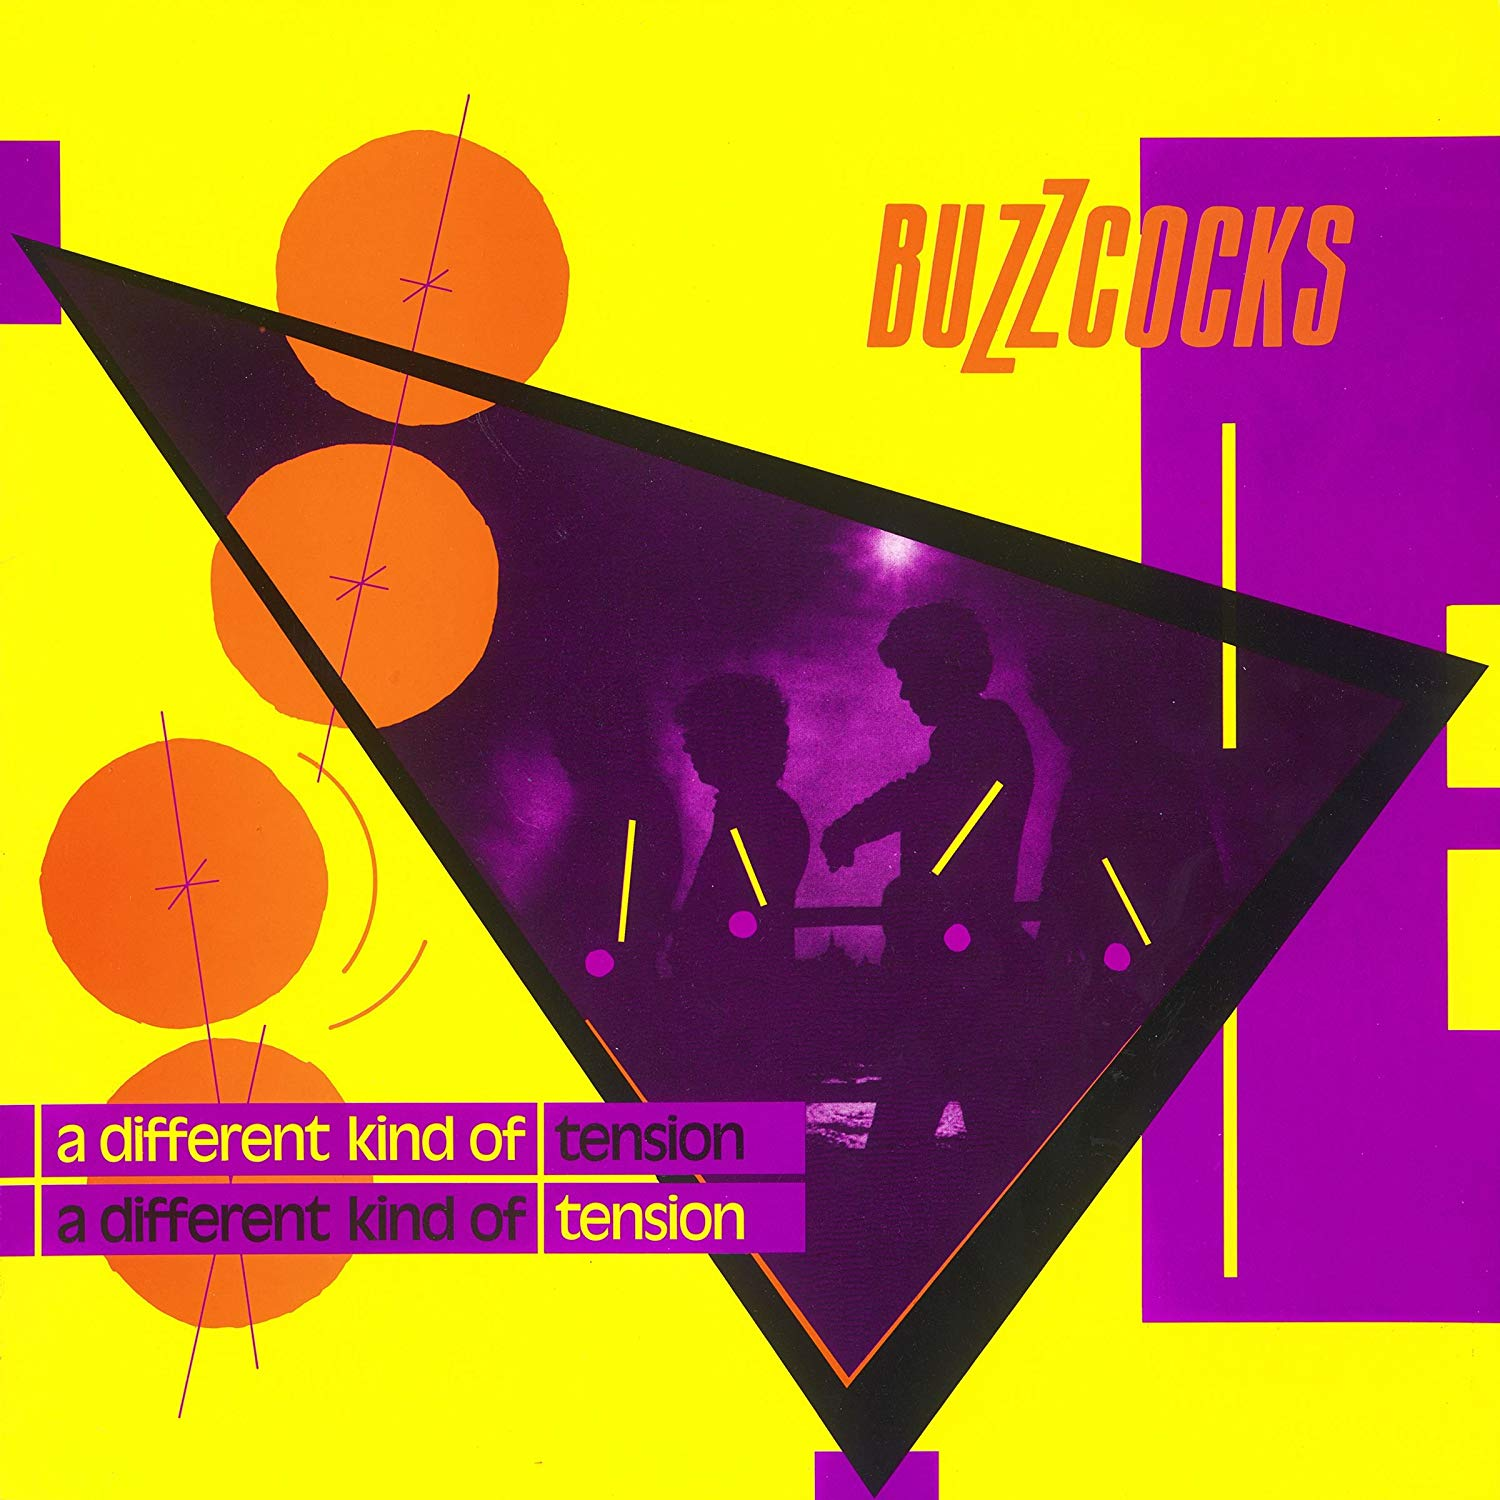 Buzzcocks - A Different Kind of Tension LP